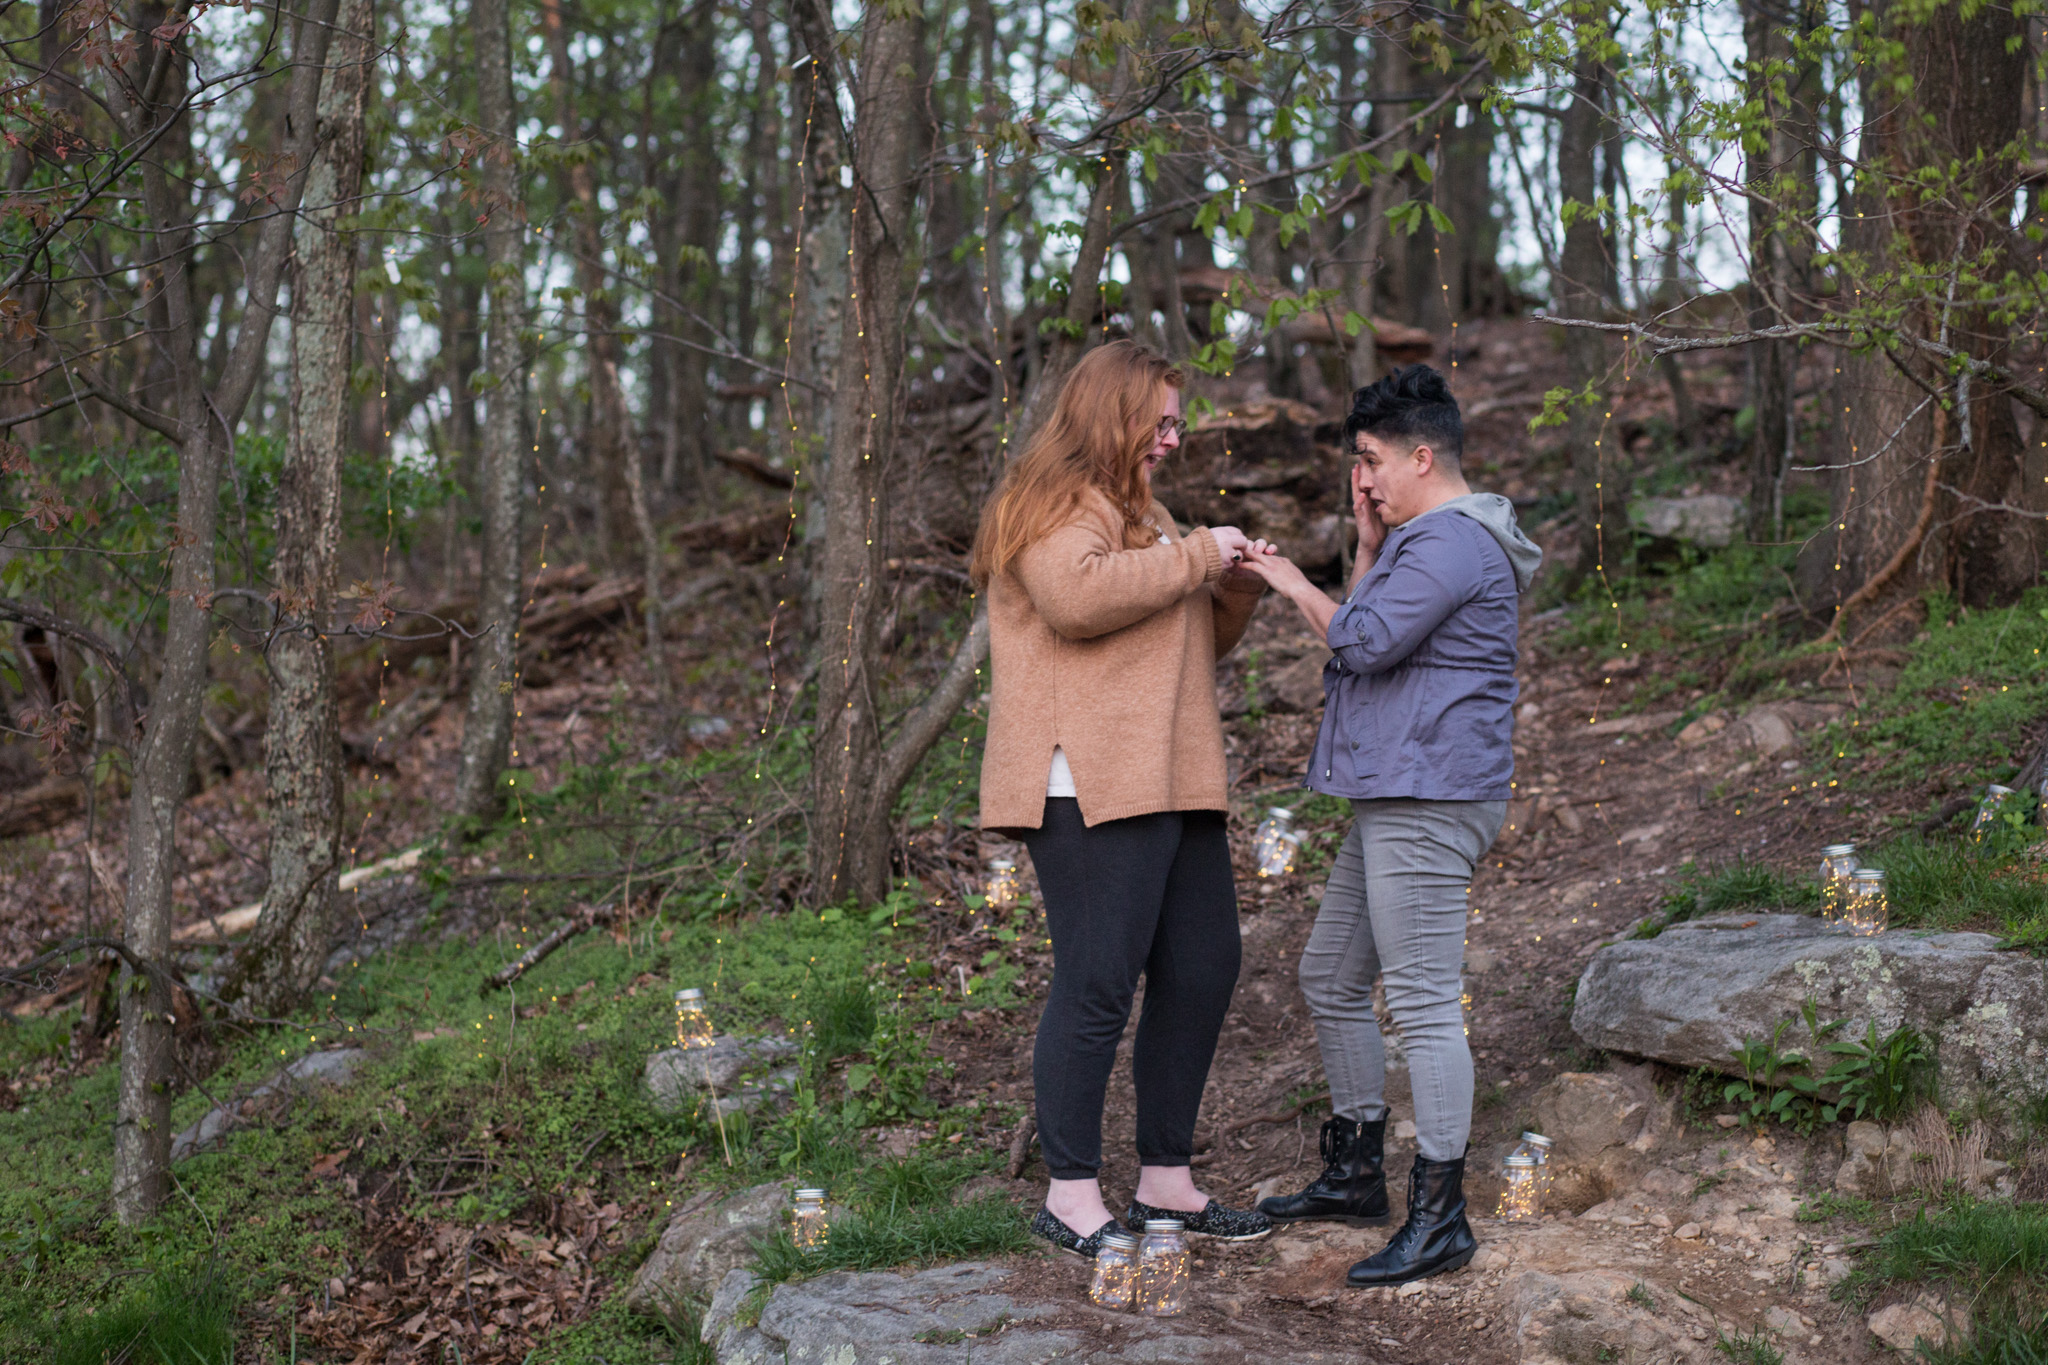 LightCreative_201904_AlexanBecky_Raleigh_Proposal_Photography_013_blog.jpg